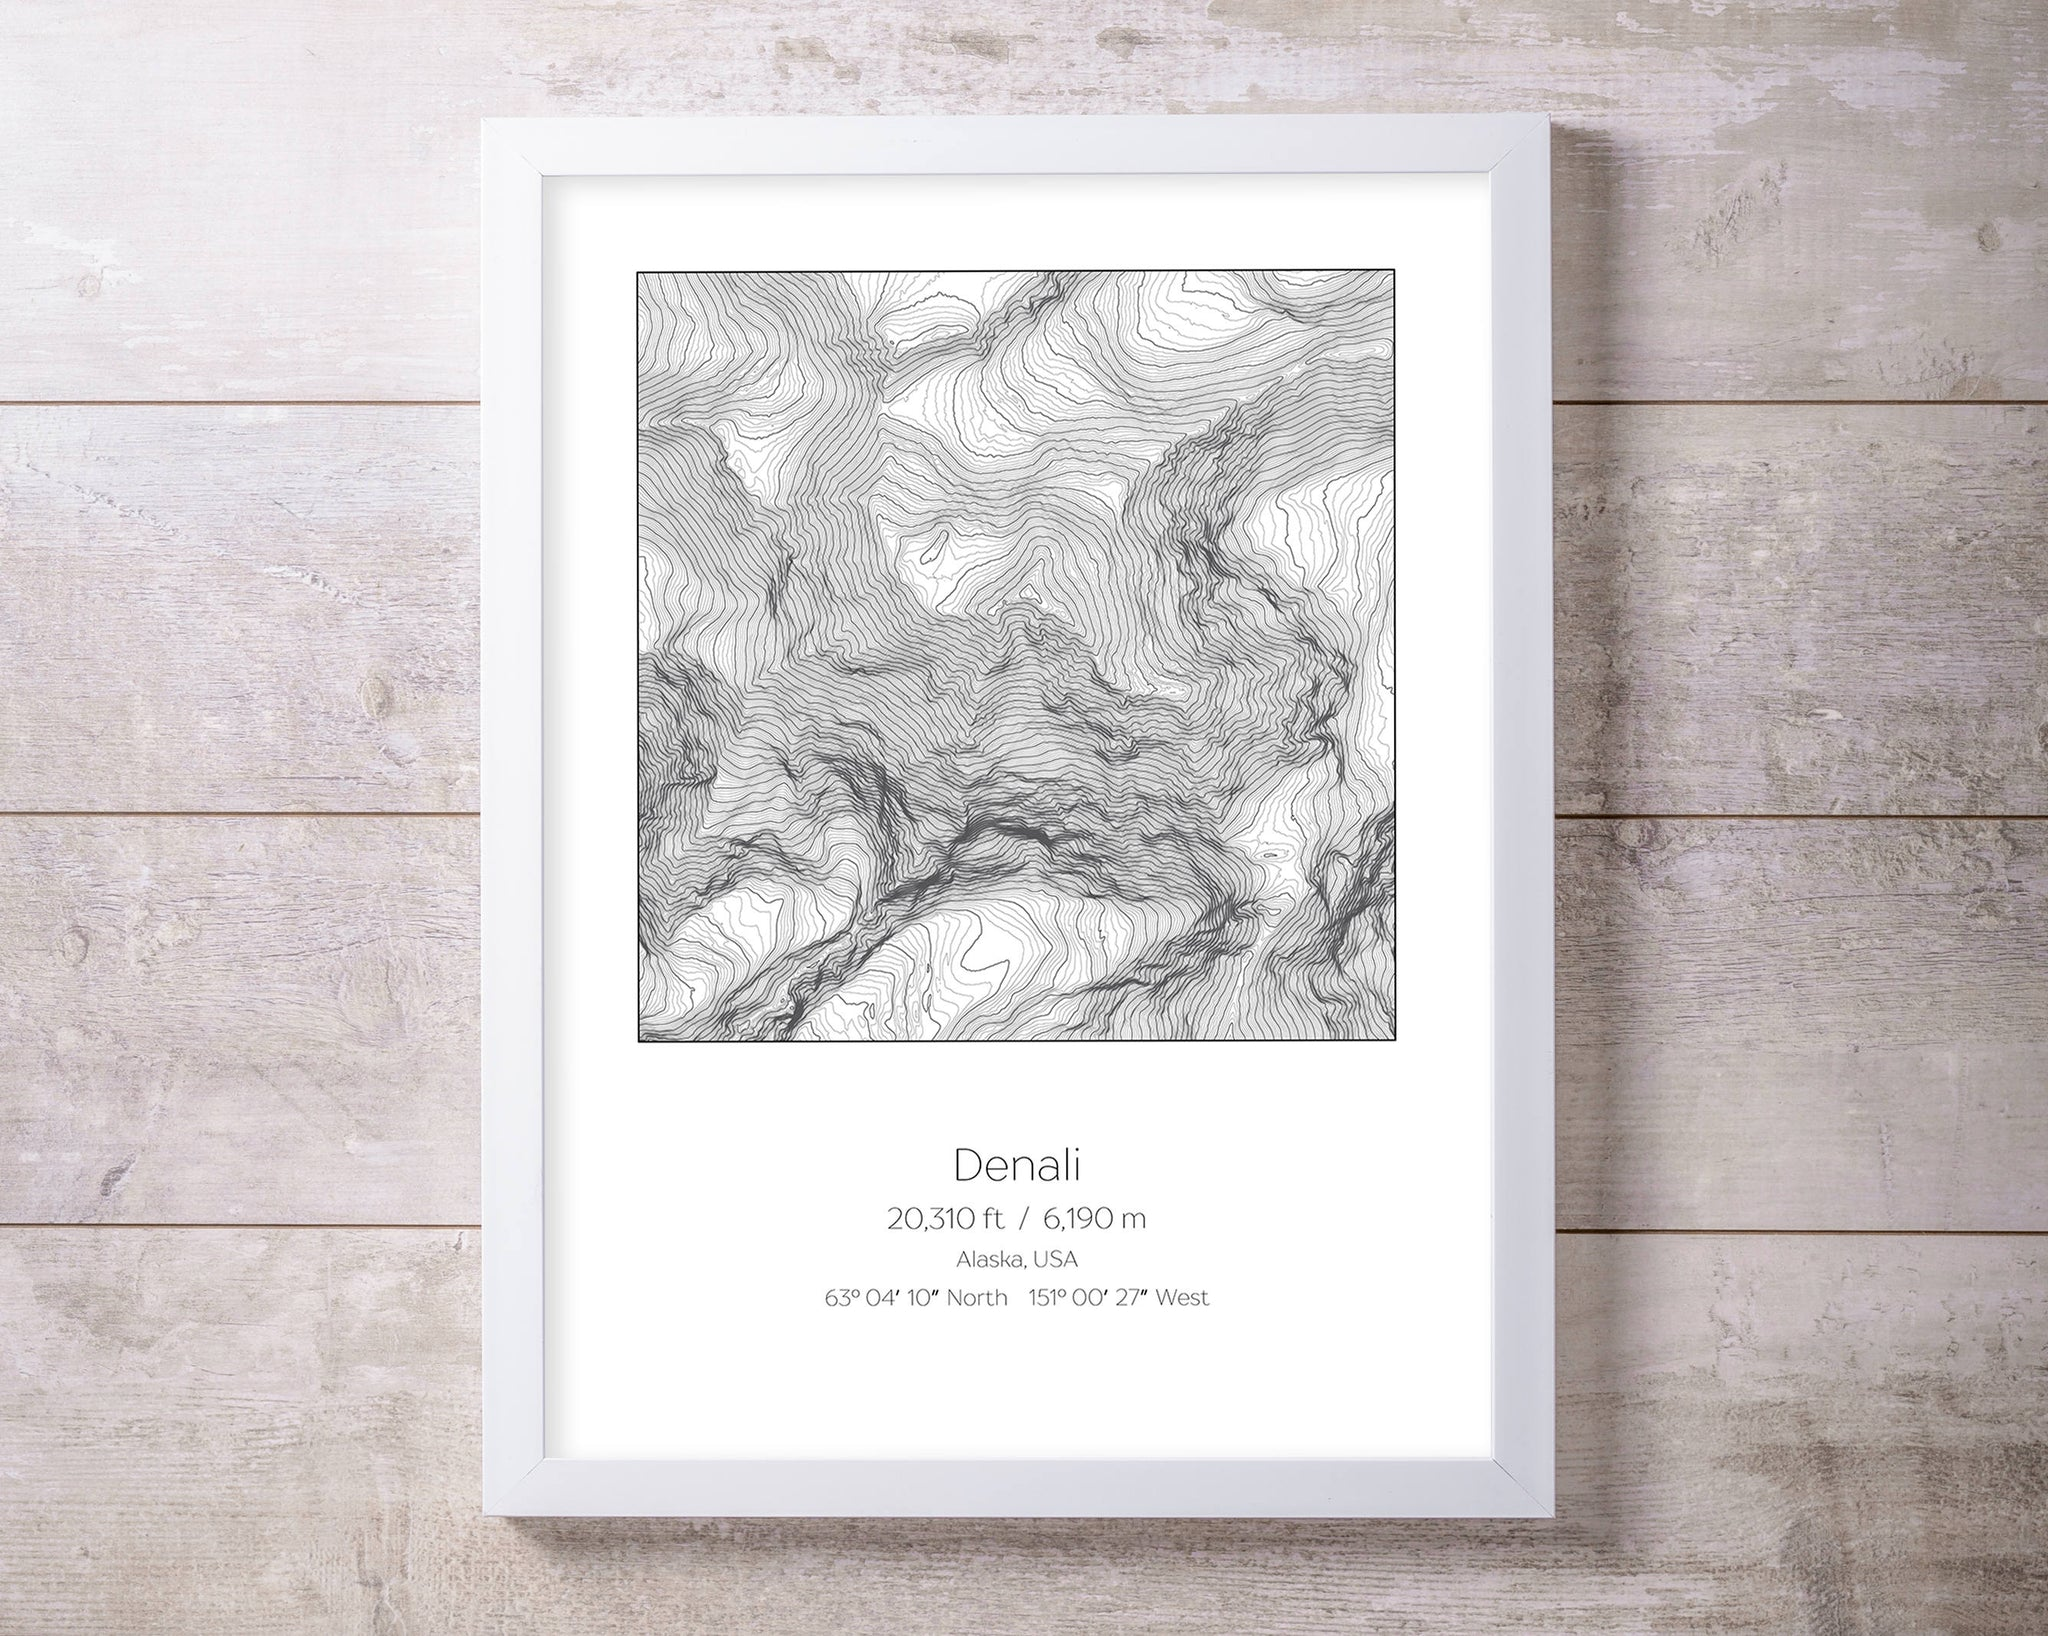 Denali, Alaska Topography Elevation Print Wall Art